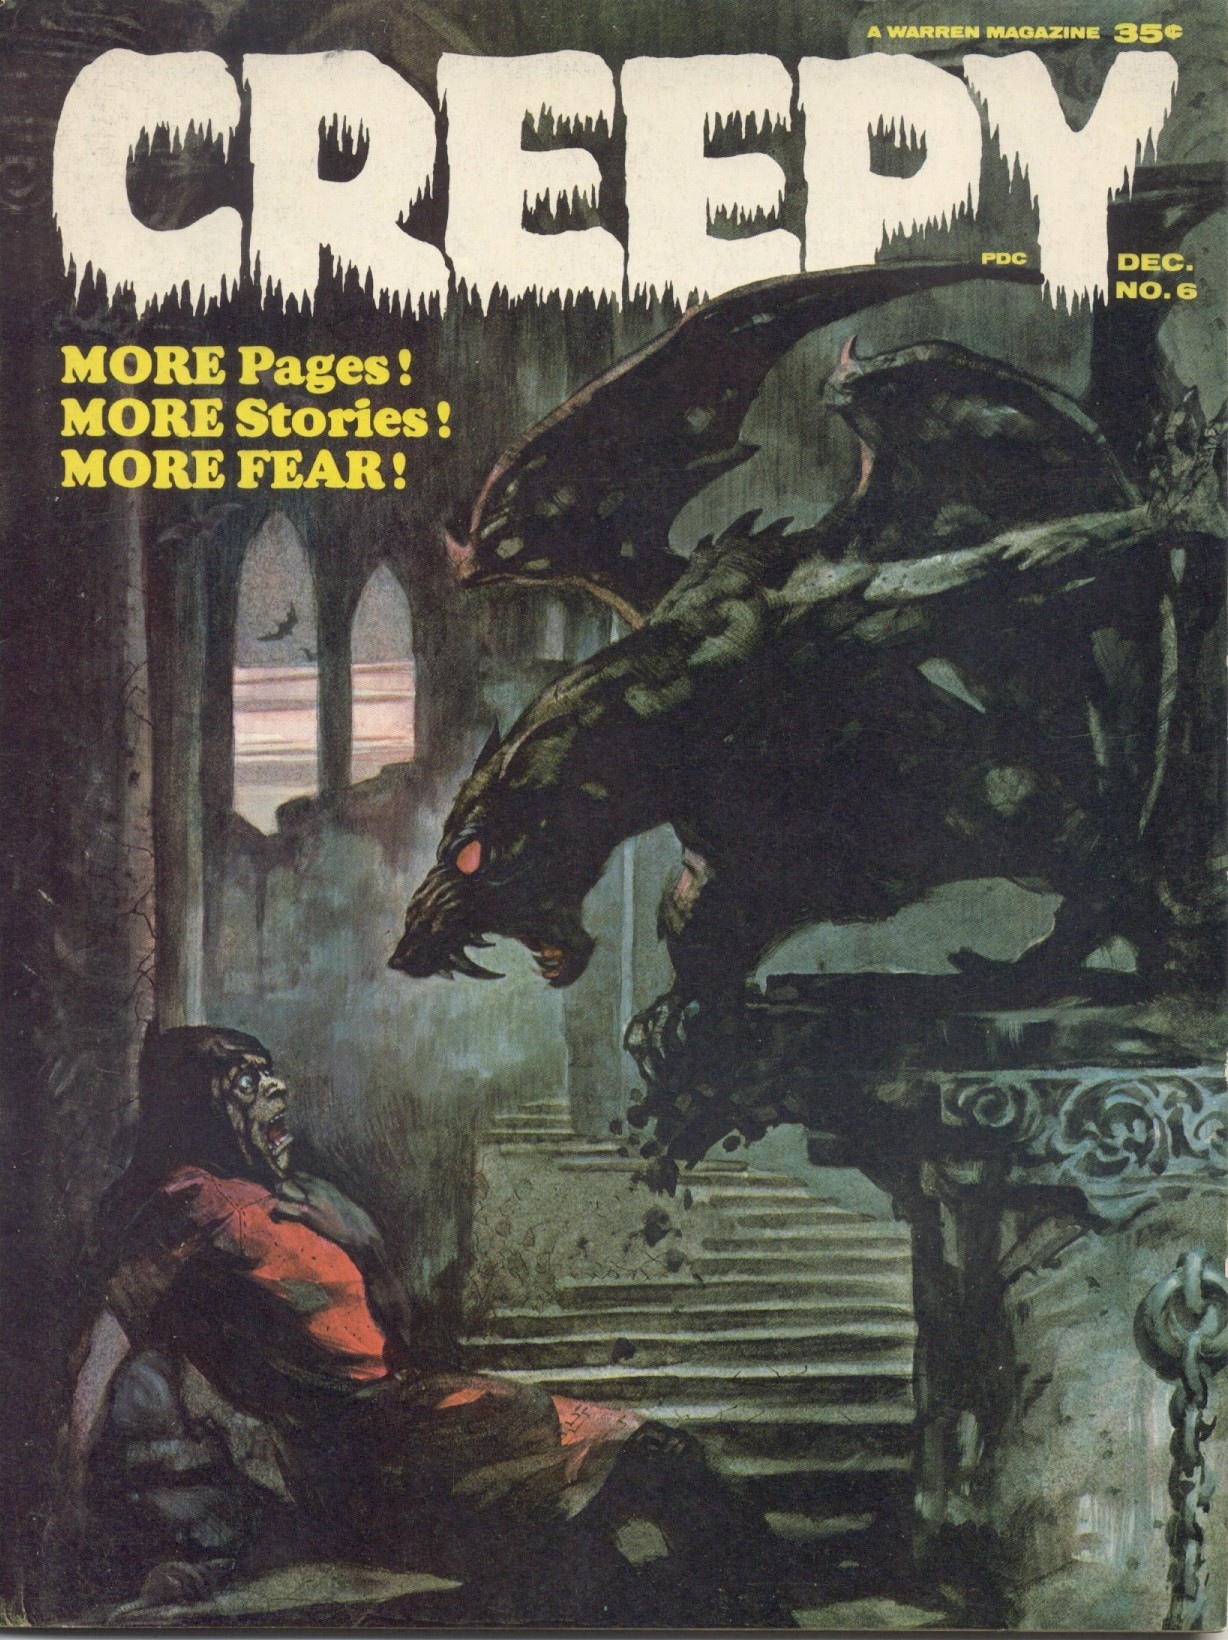 mlloydart:  Creepy #6. 1964 Warren Magazine. Cover by Frank Frazetta